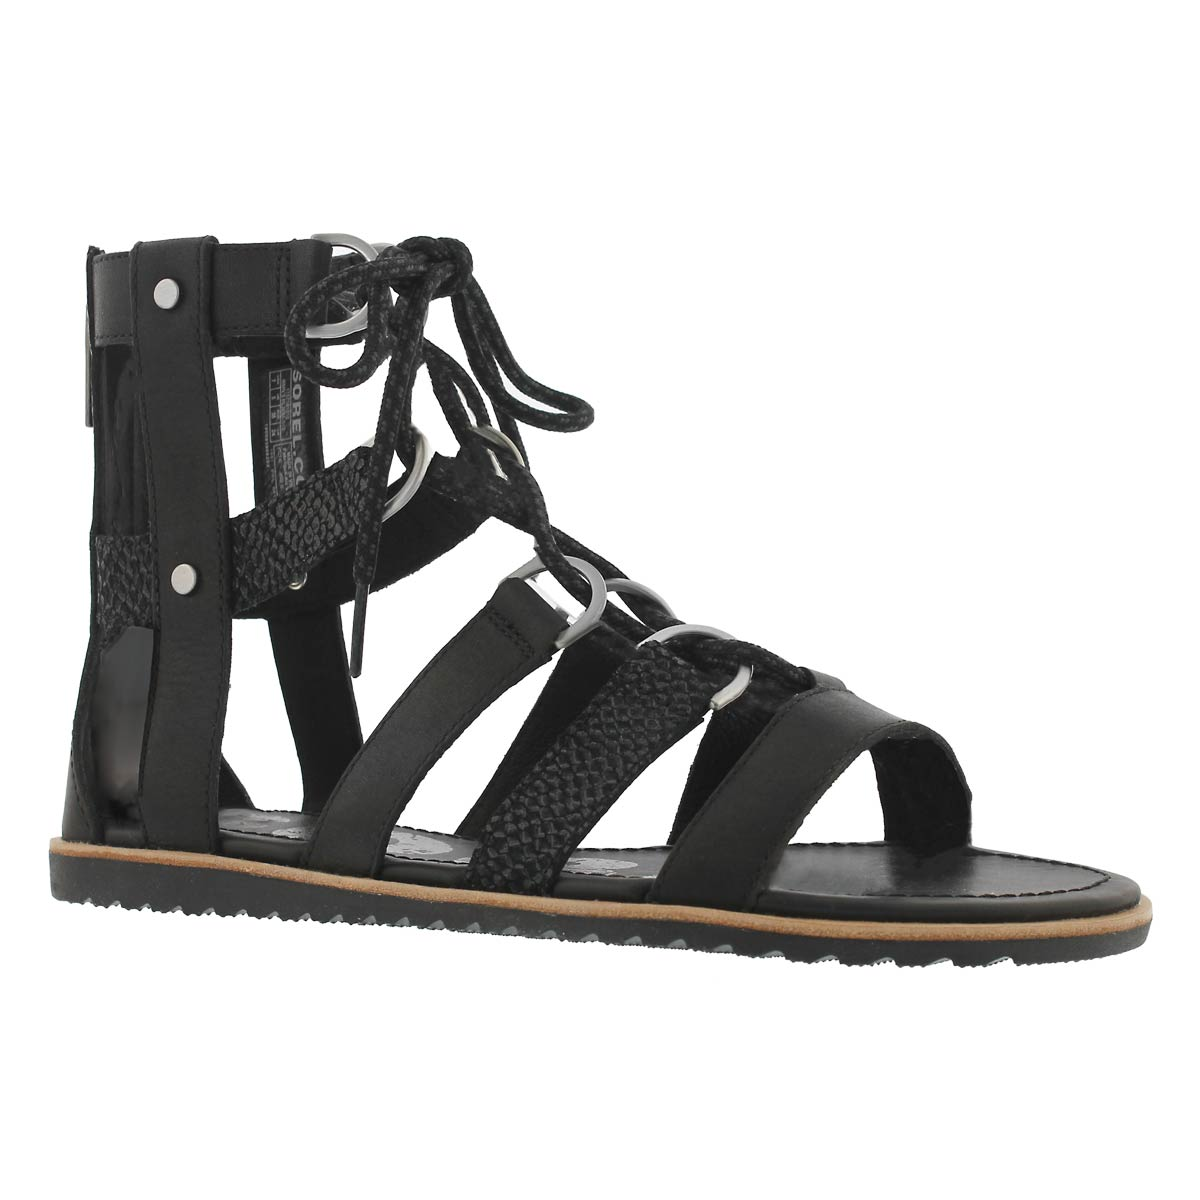 Women's ELLA lace up black casual sandals